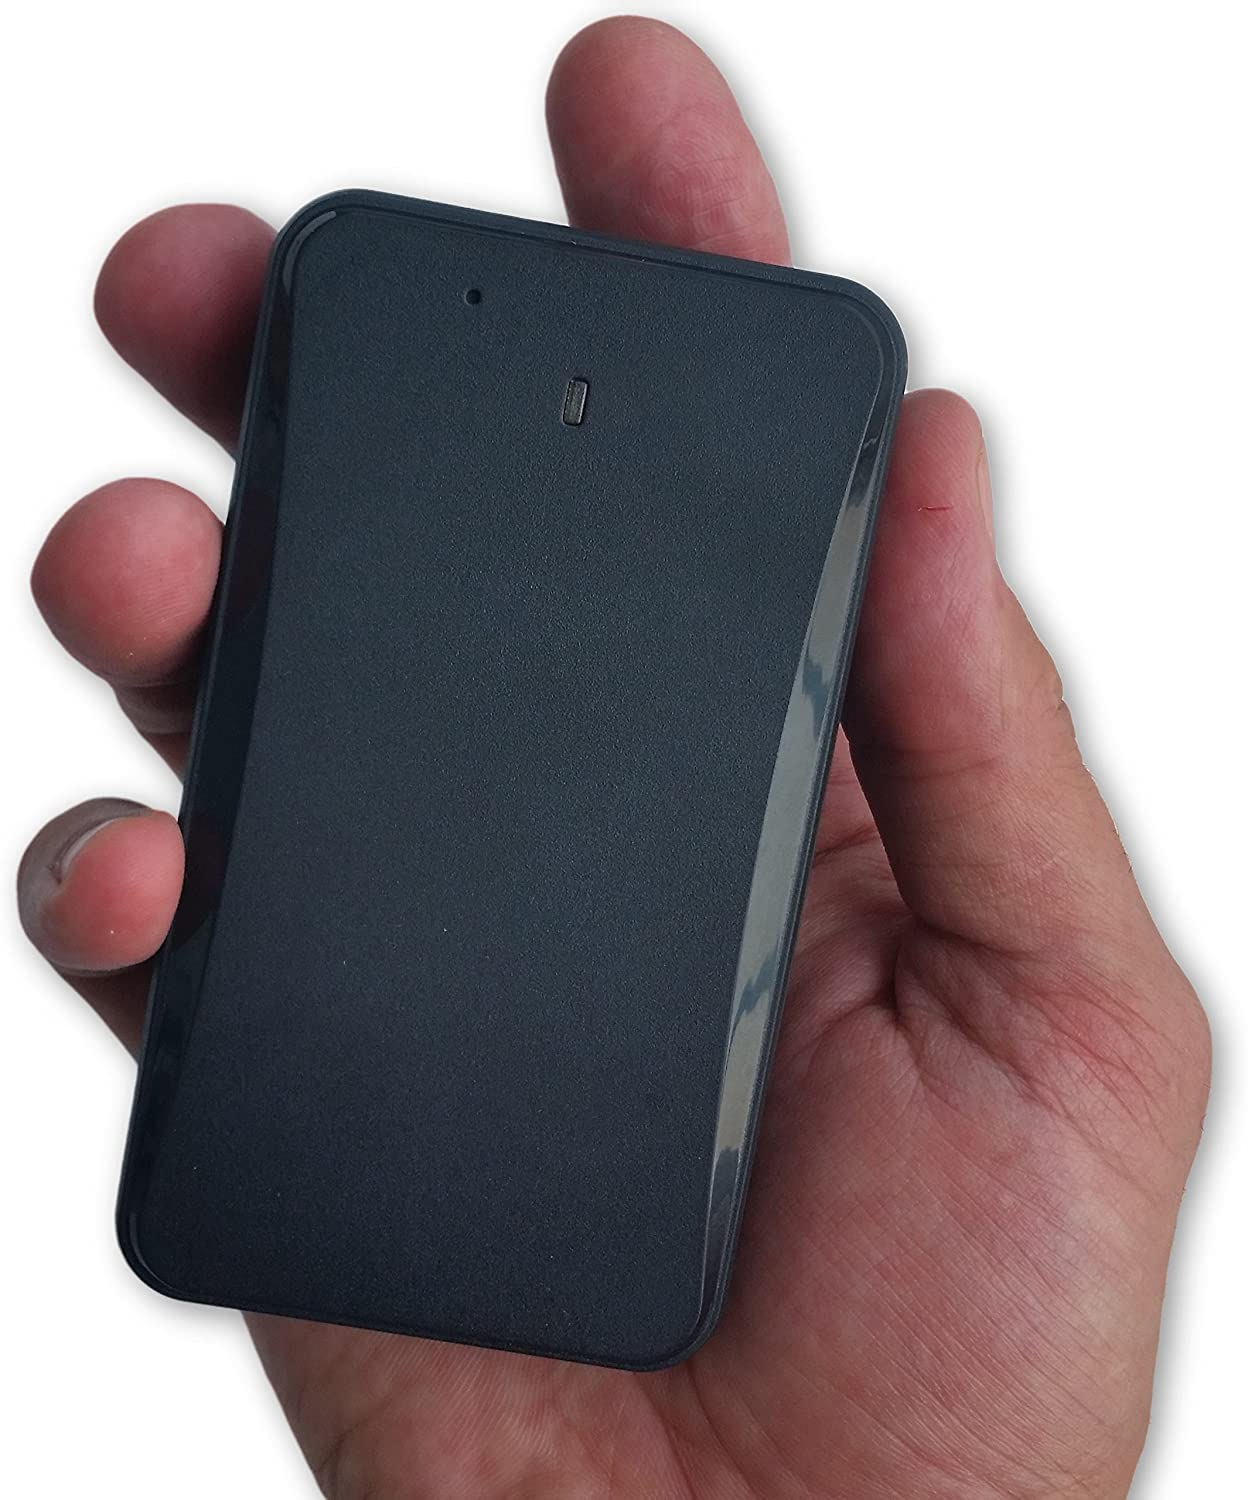 Ti-6000 Live GPS Tracker Mini Portable with Built-in Magnets. 1 Month Battery Life Includes SIM Card